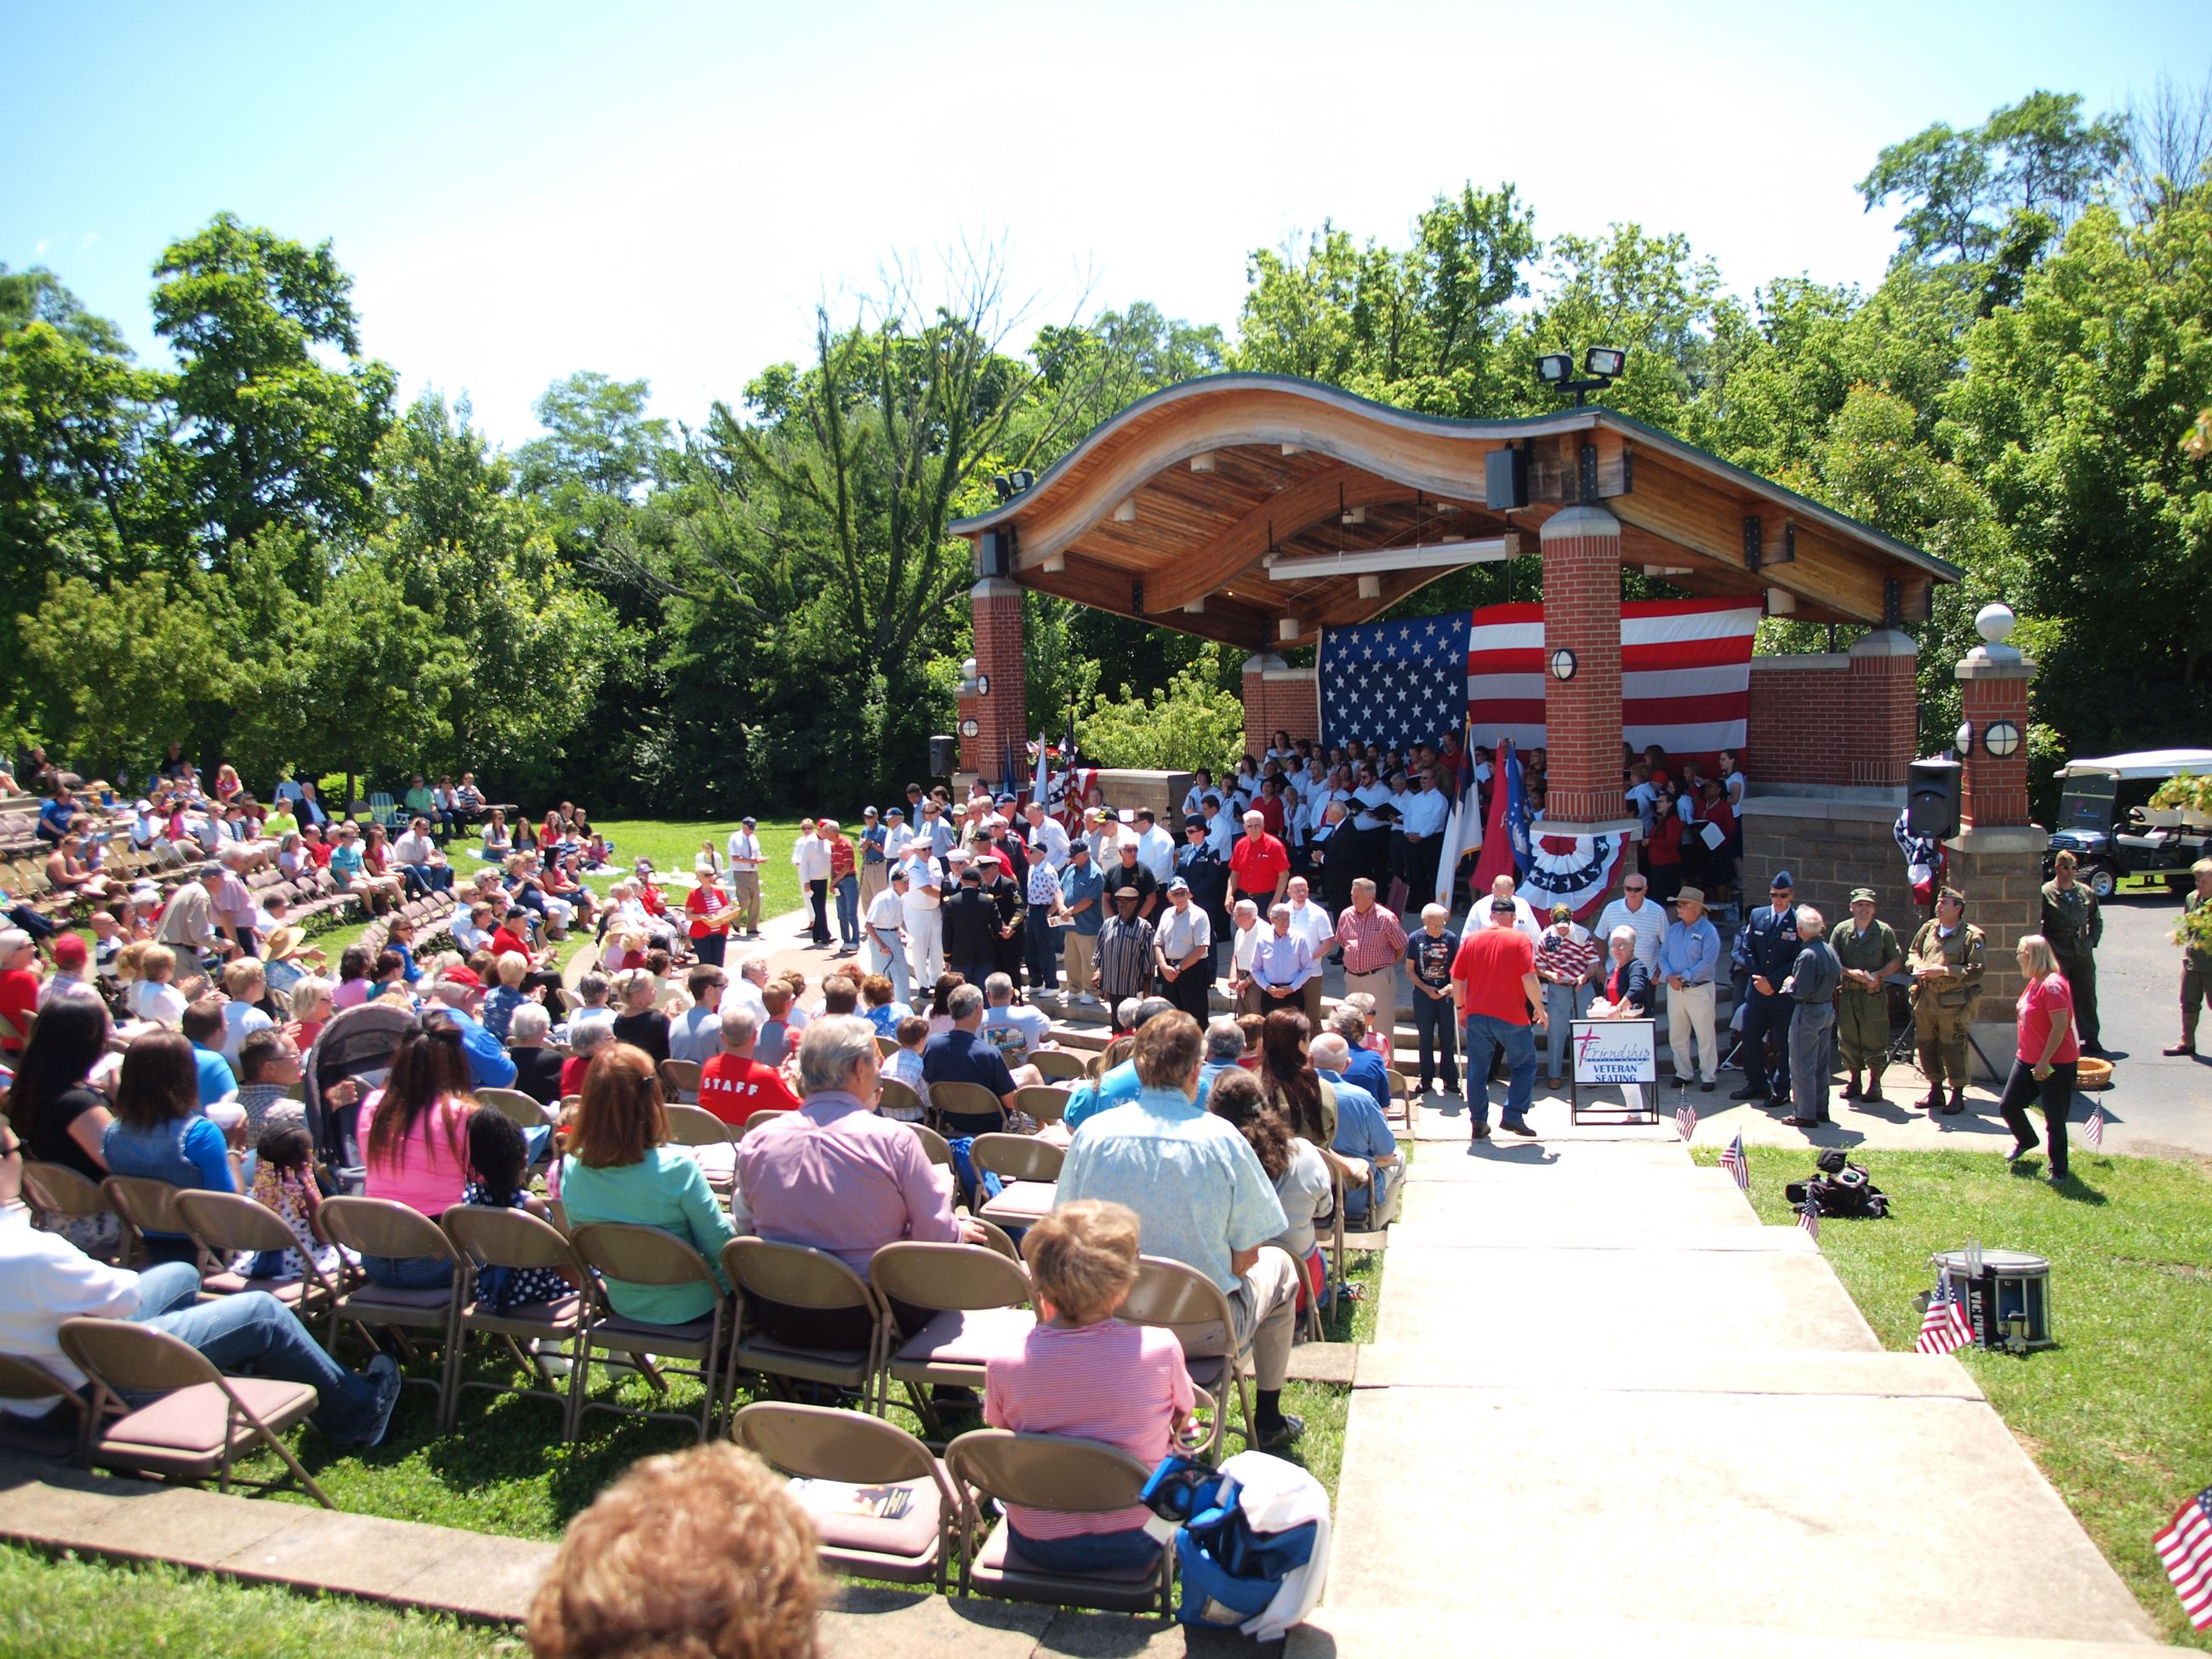 People attend an event at an outdoor amphitheatre